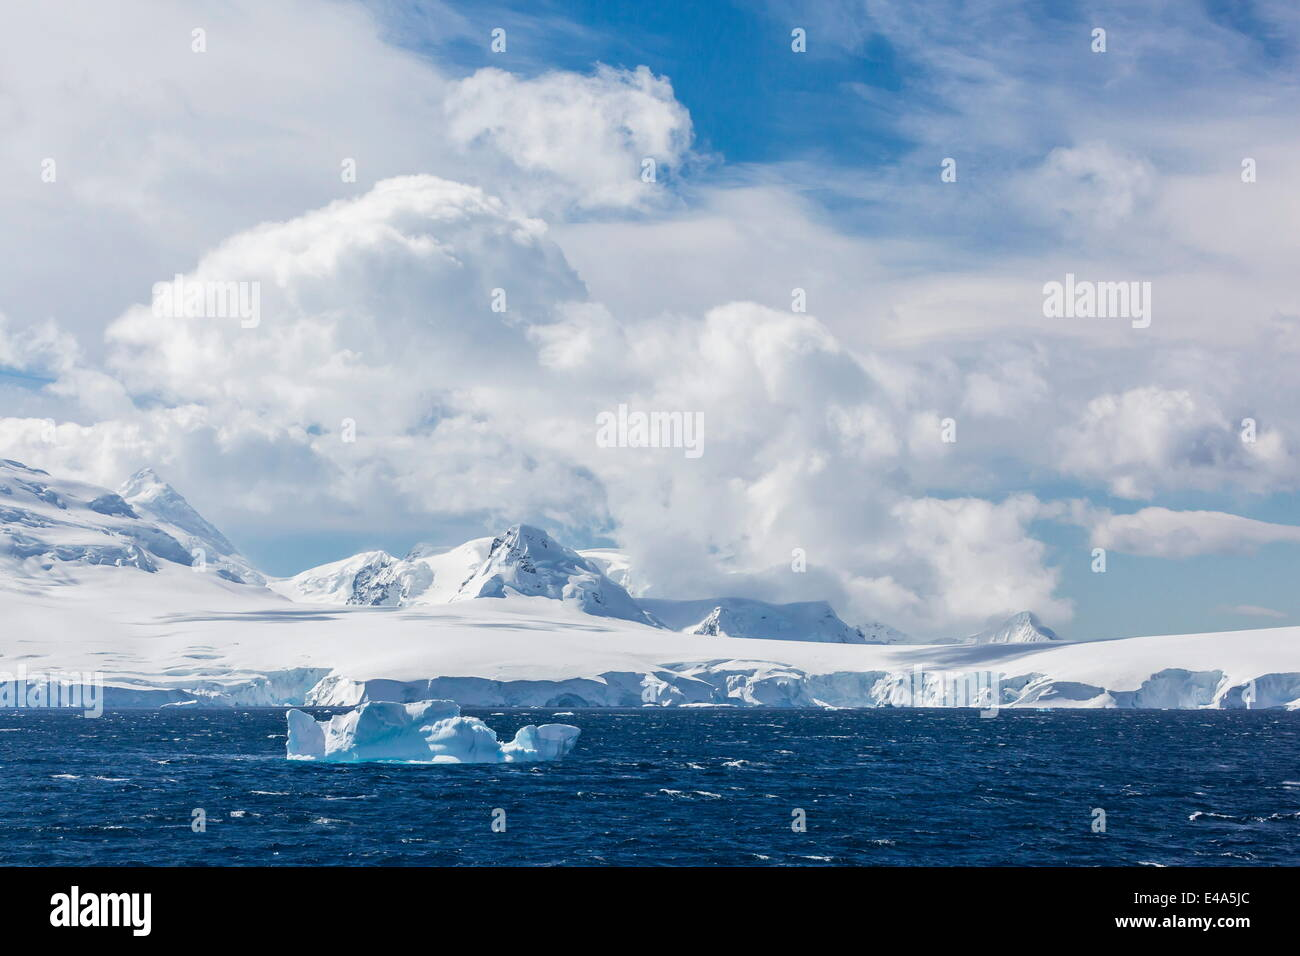 Clouds build over snow-capped mountains in Dallmann Bay, Antarctica, Polar Regions - Stock Image